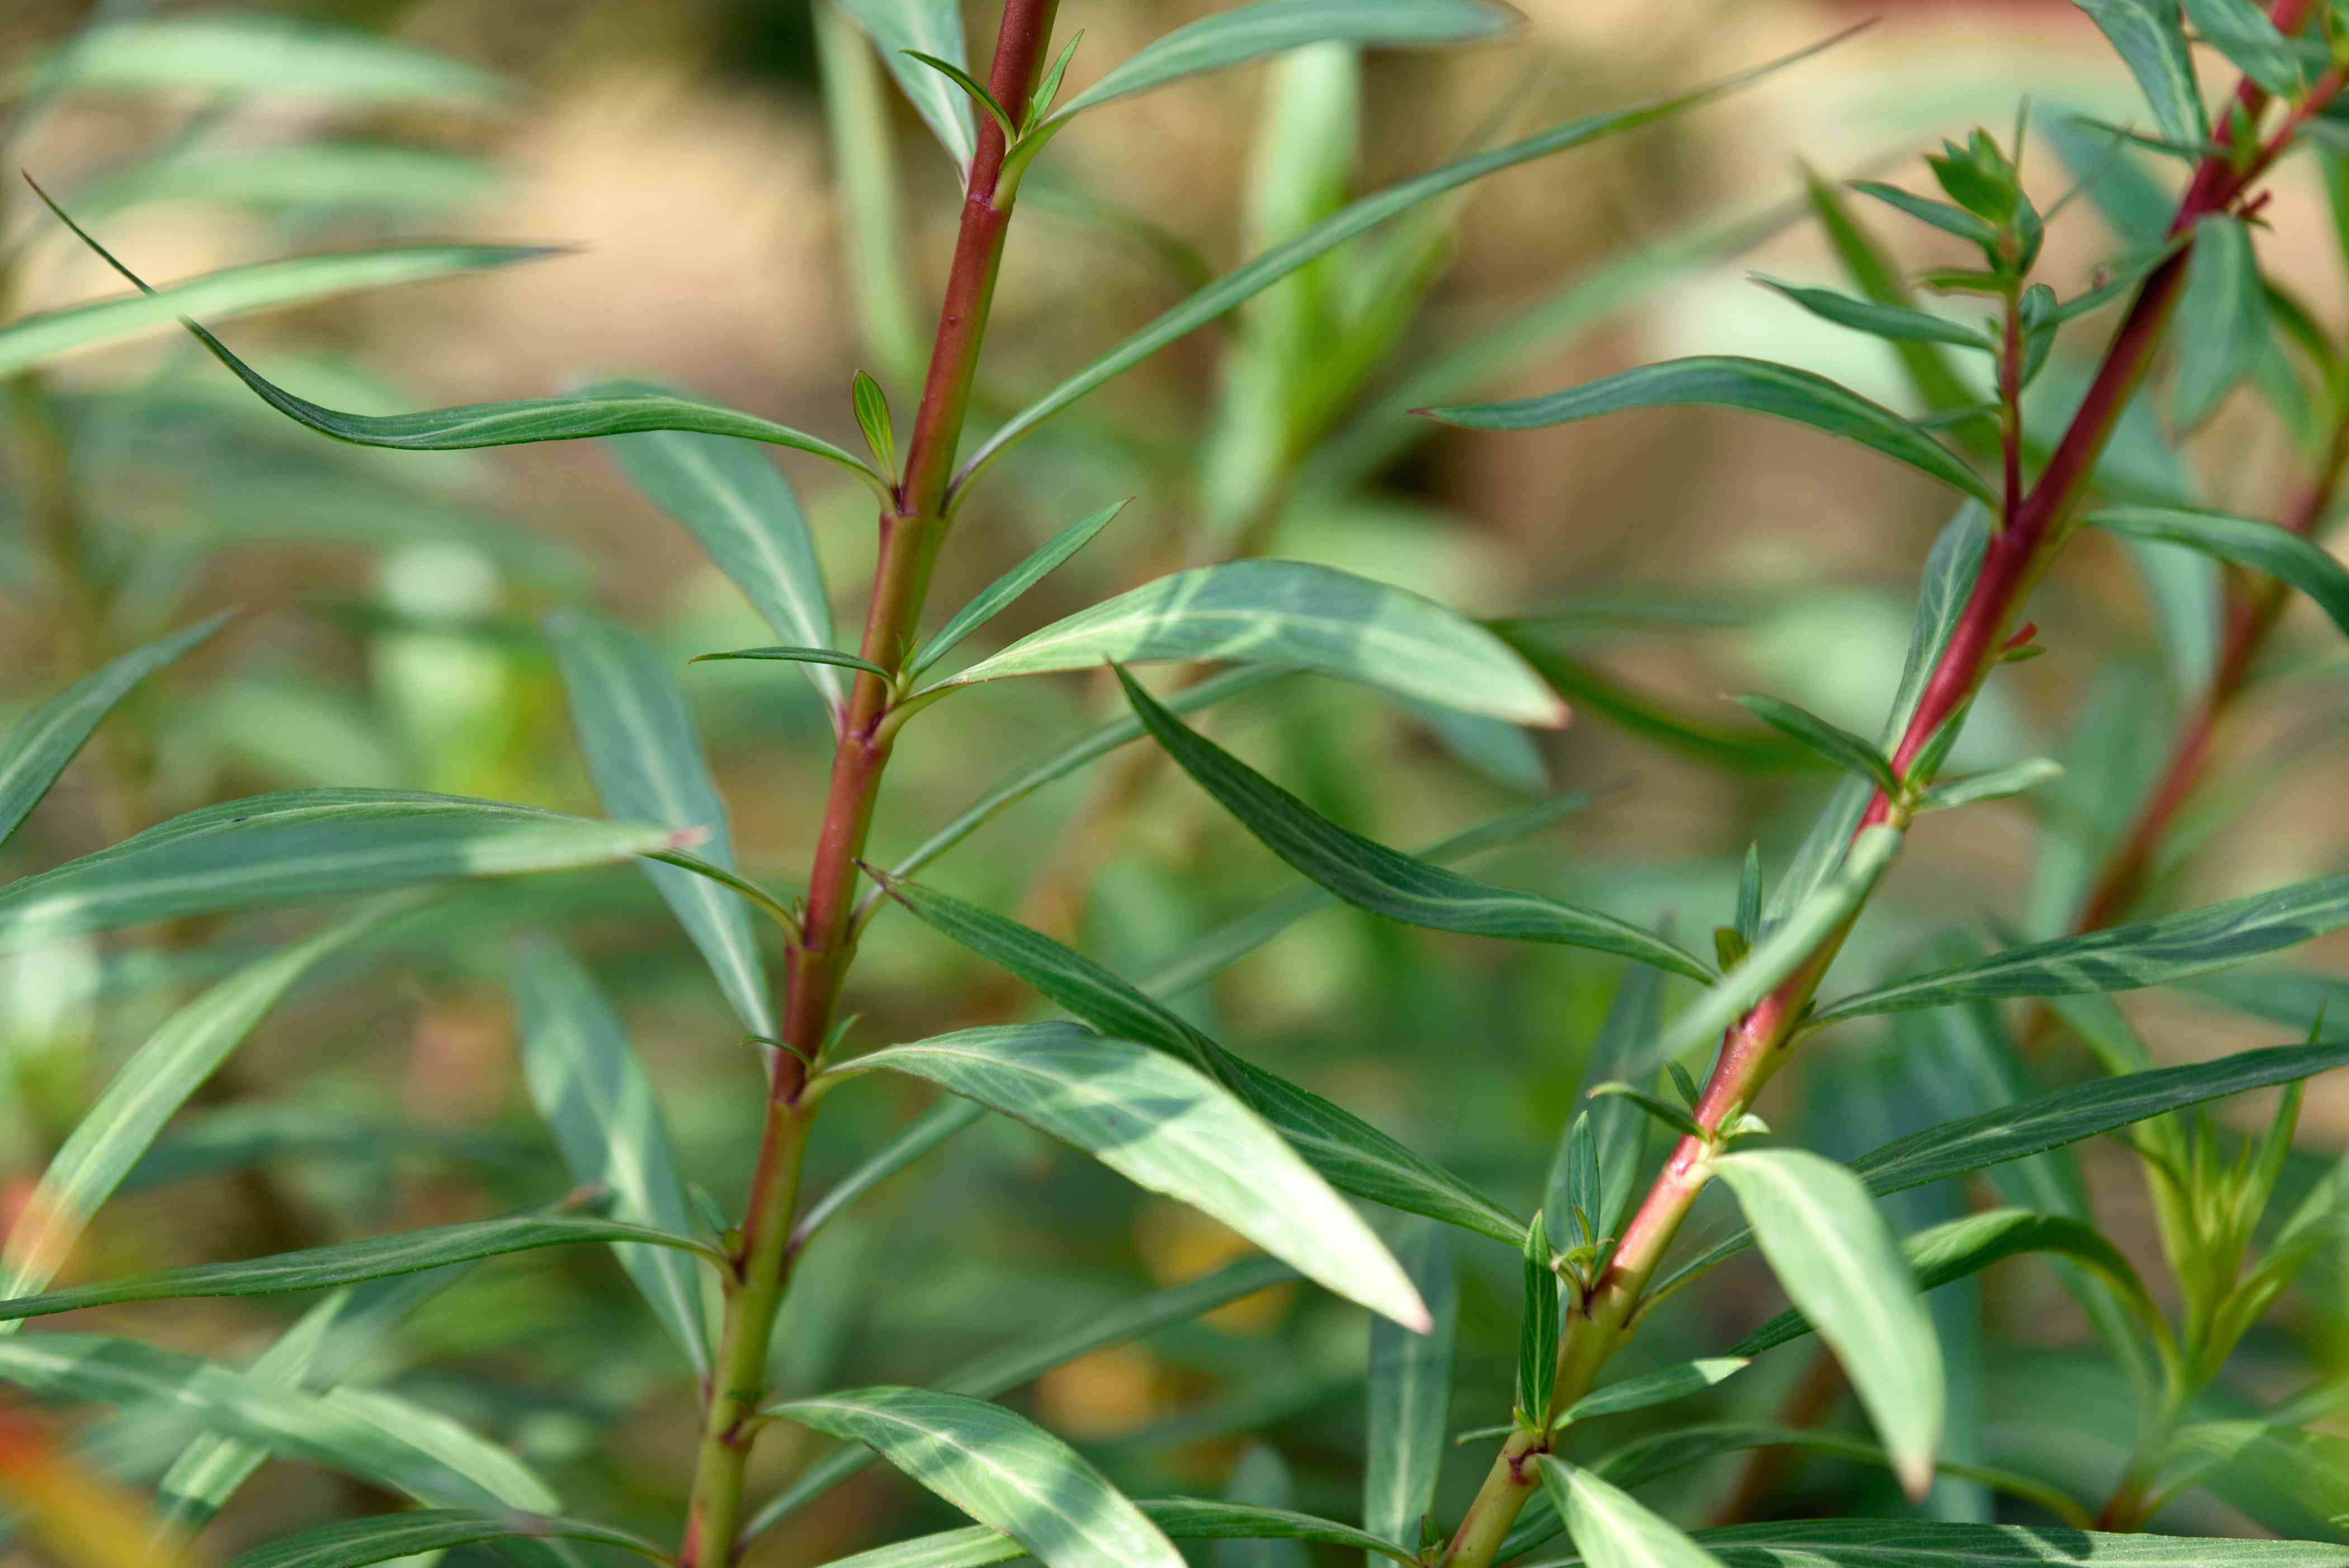 Candy corn plant with upright red stems and light green narrow leaves closeup